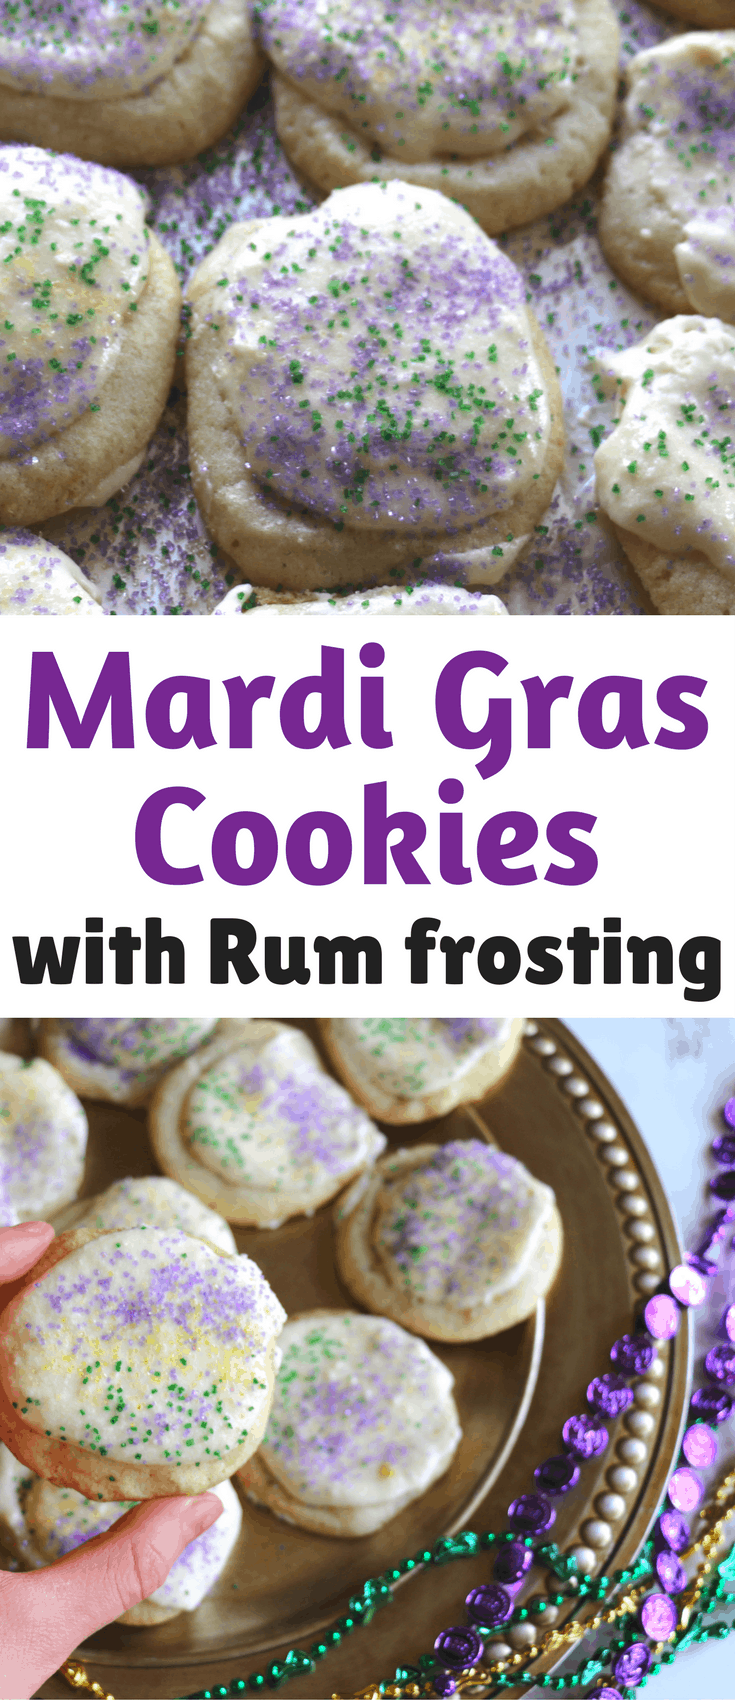 Mardi gras cookies with rum frosting casey la vie this easy mardi gras cookies with rum frosting recipe is inspired by king cakes forumfinder Choice Image